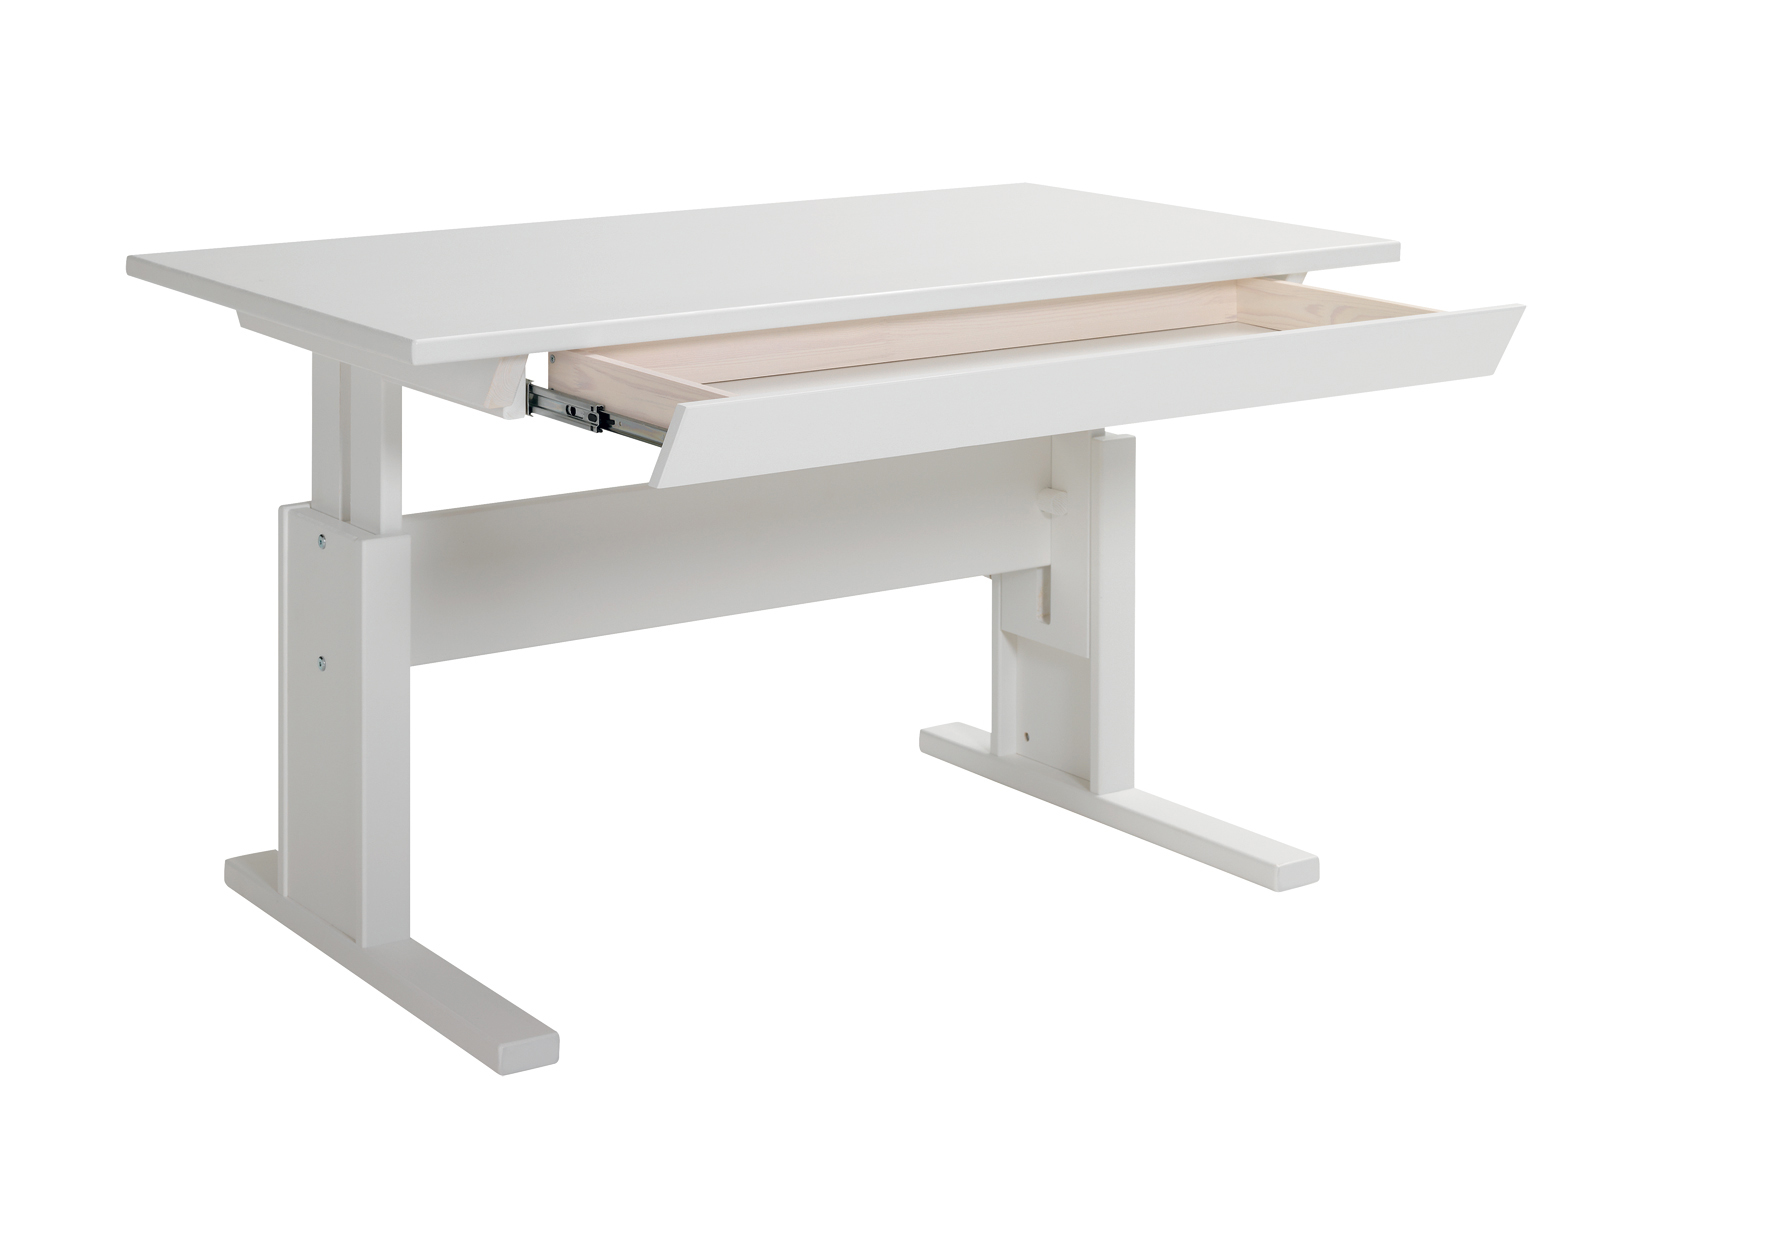 adjustable writing desk Explore the benefits of an adjustable height desk including sit to stand functionality and improved productivity.